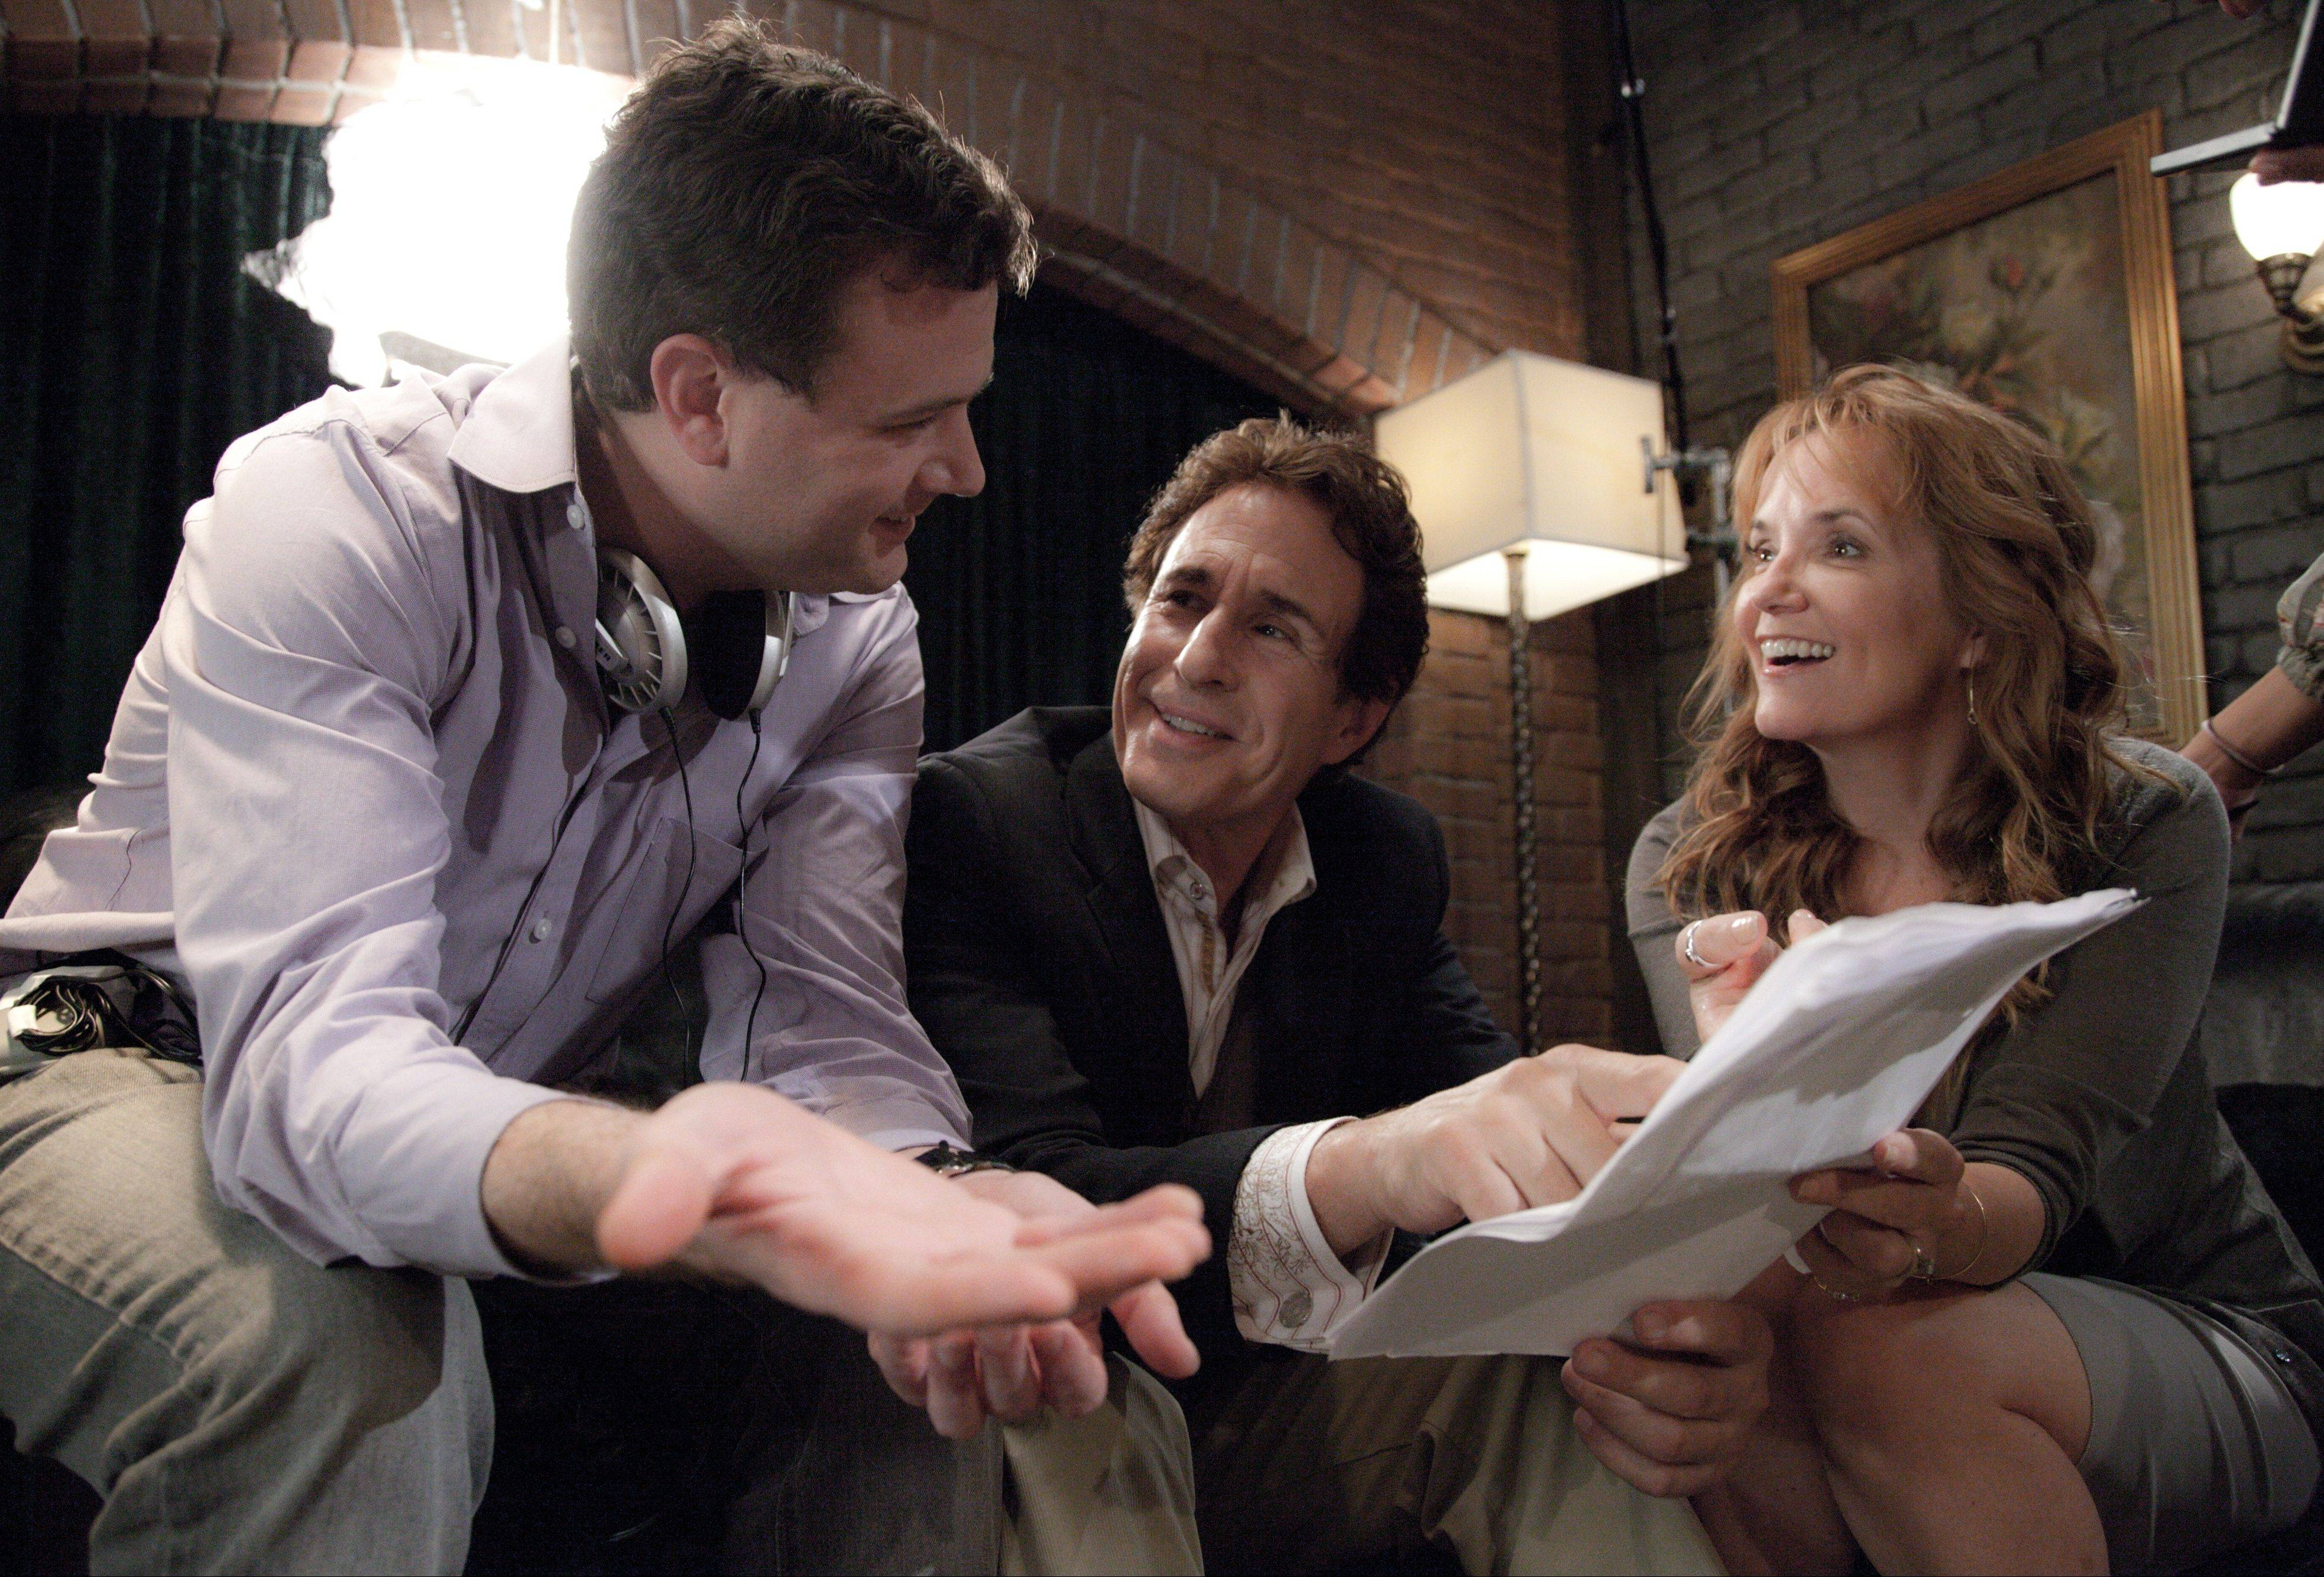 Naperville Central High School grad Jim Hemphill, left, talks with stars John Shea and Lea Thompson on his movie